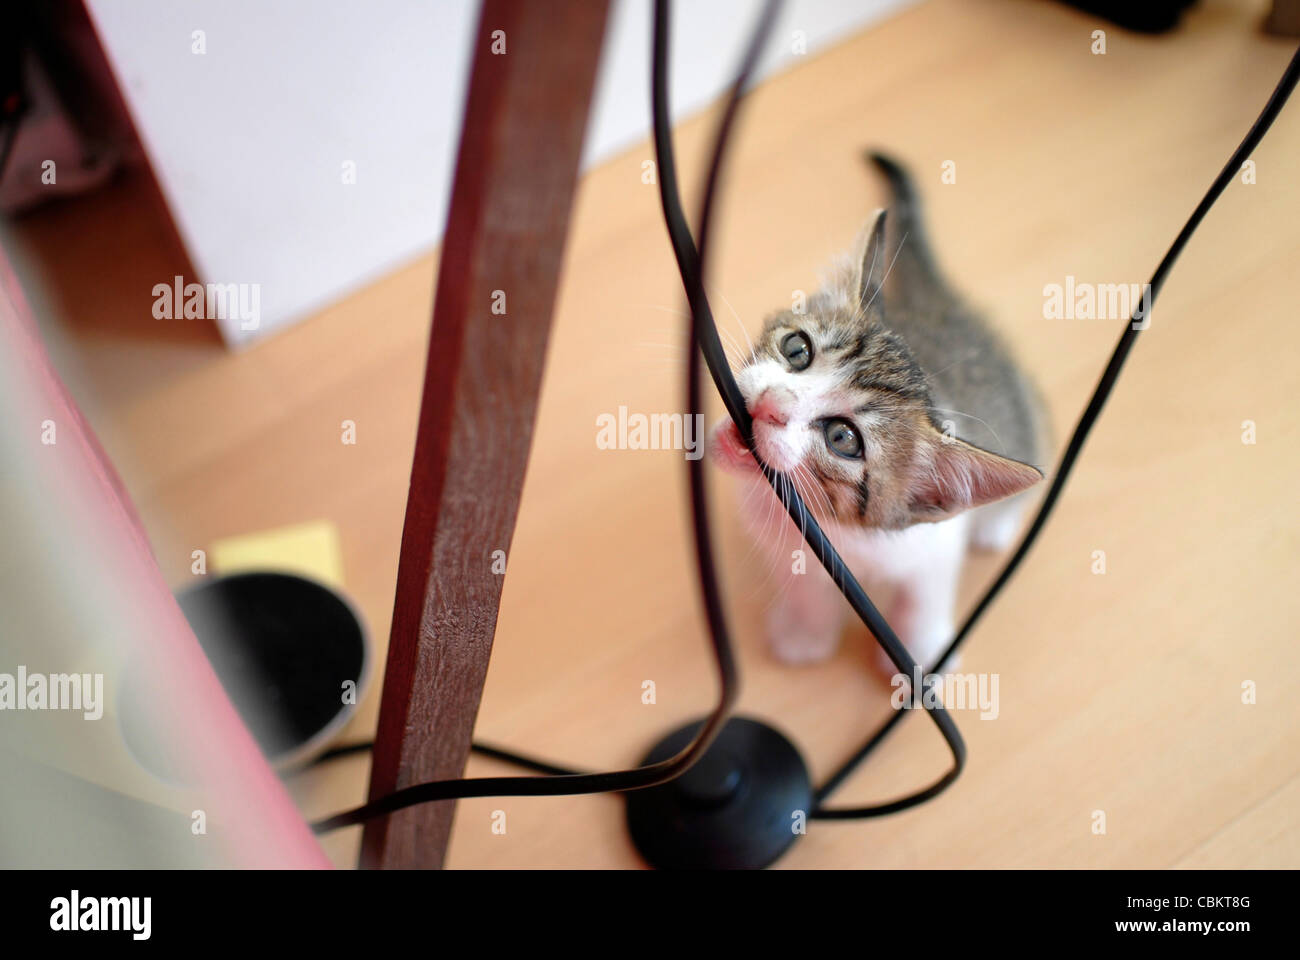 Cute few weeks old kitten biting lamp cable Stock Photo: 41618096 ...